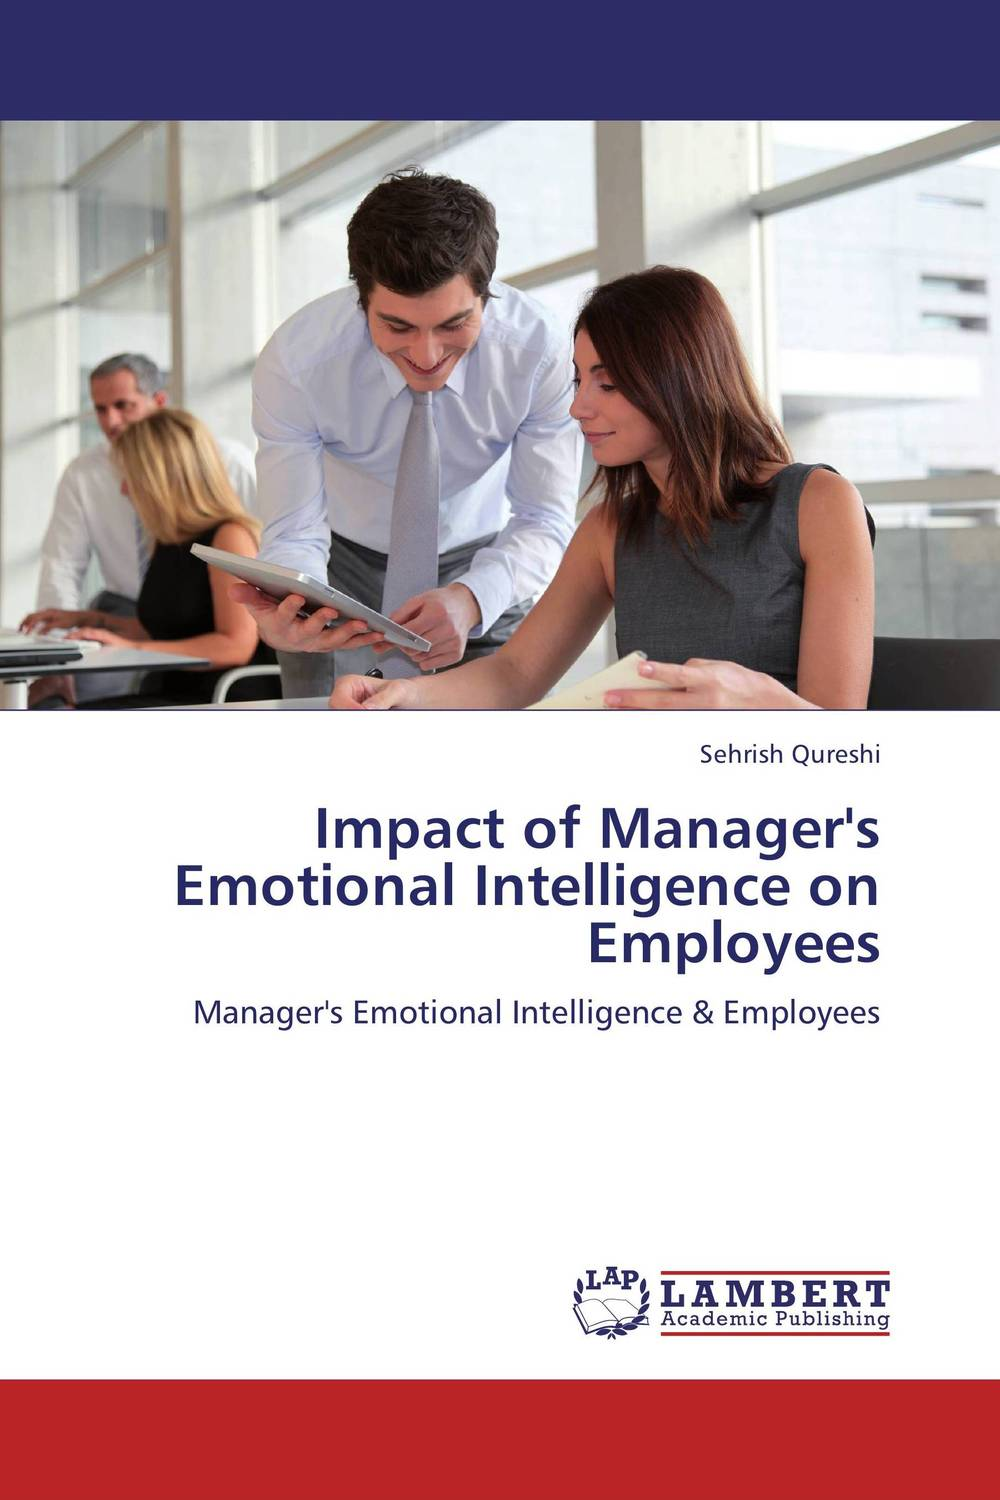 Impact of Manager's Emotional Intelligence on Employees the impact of work engagement on frontline employees' outcomes